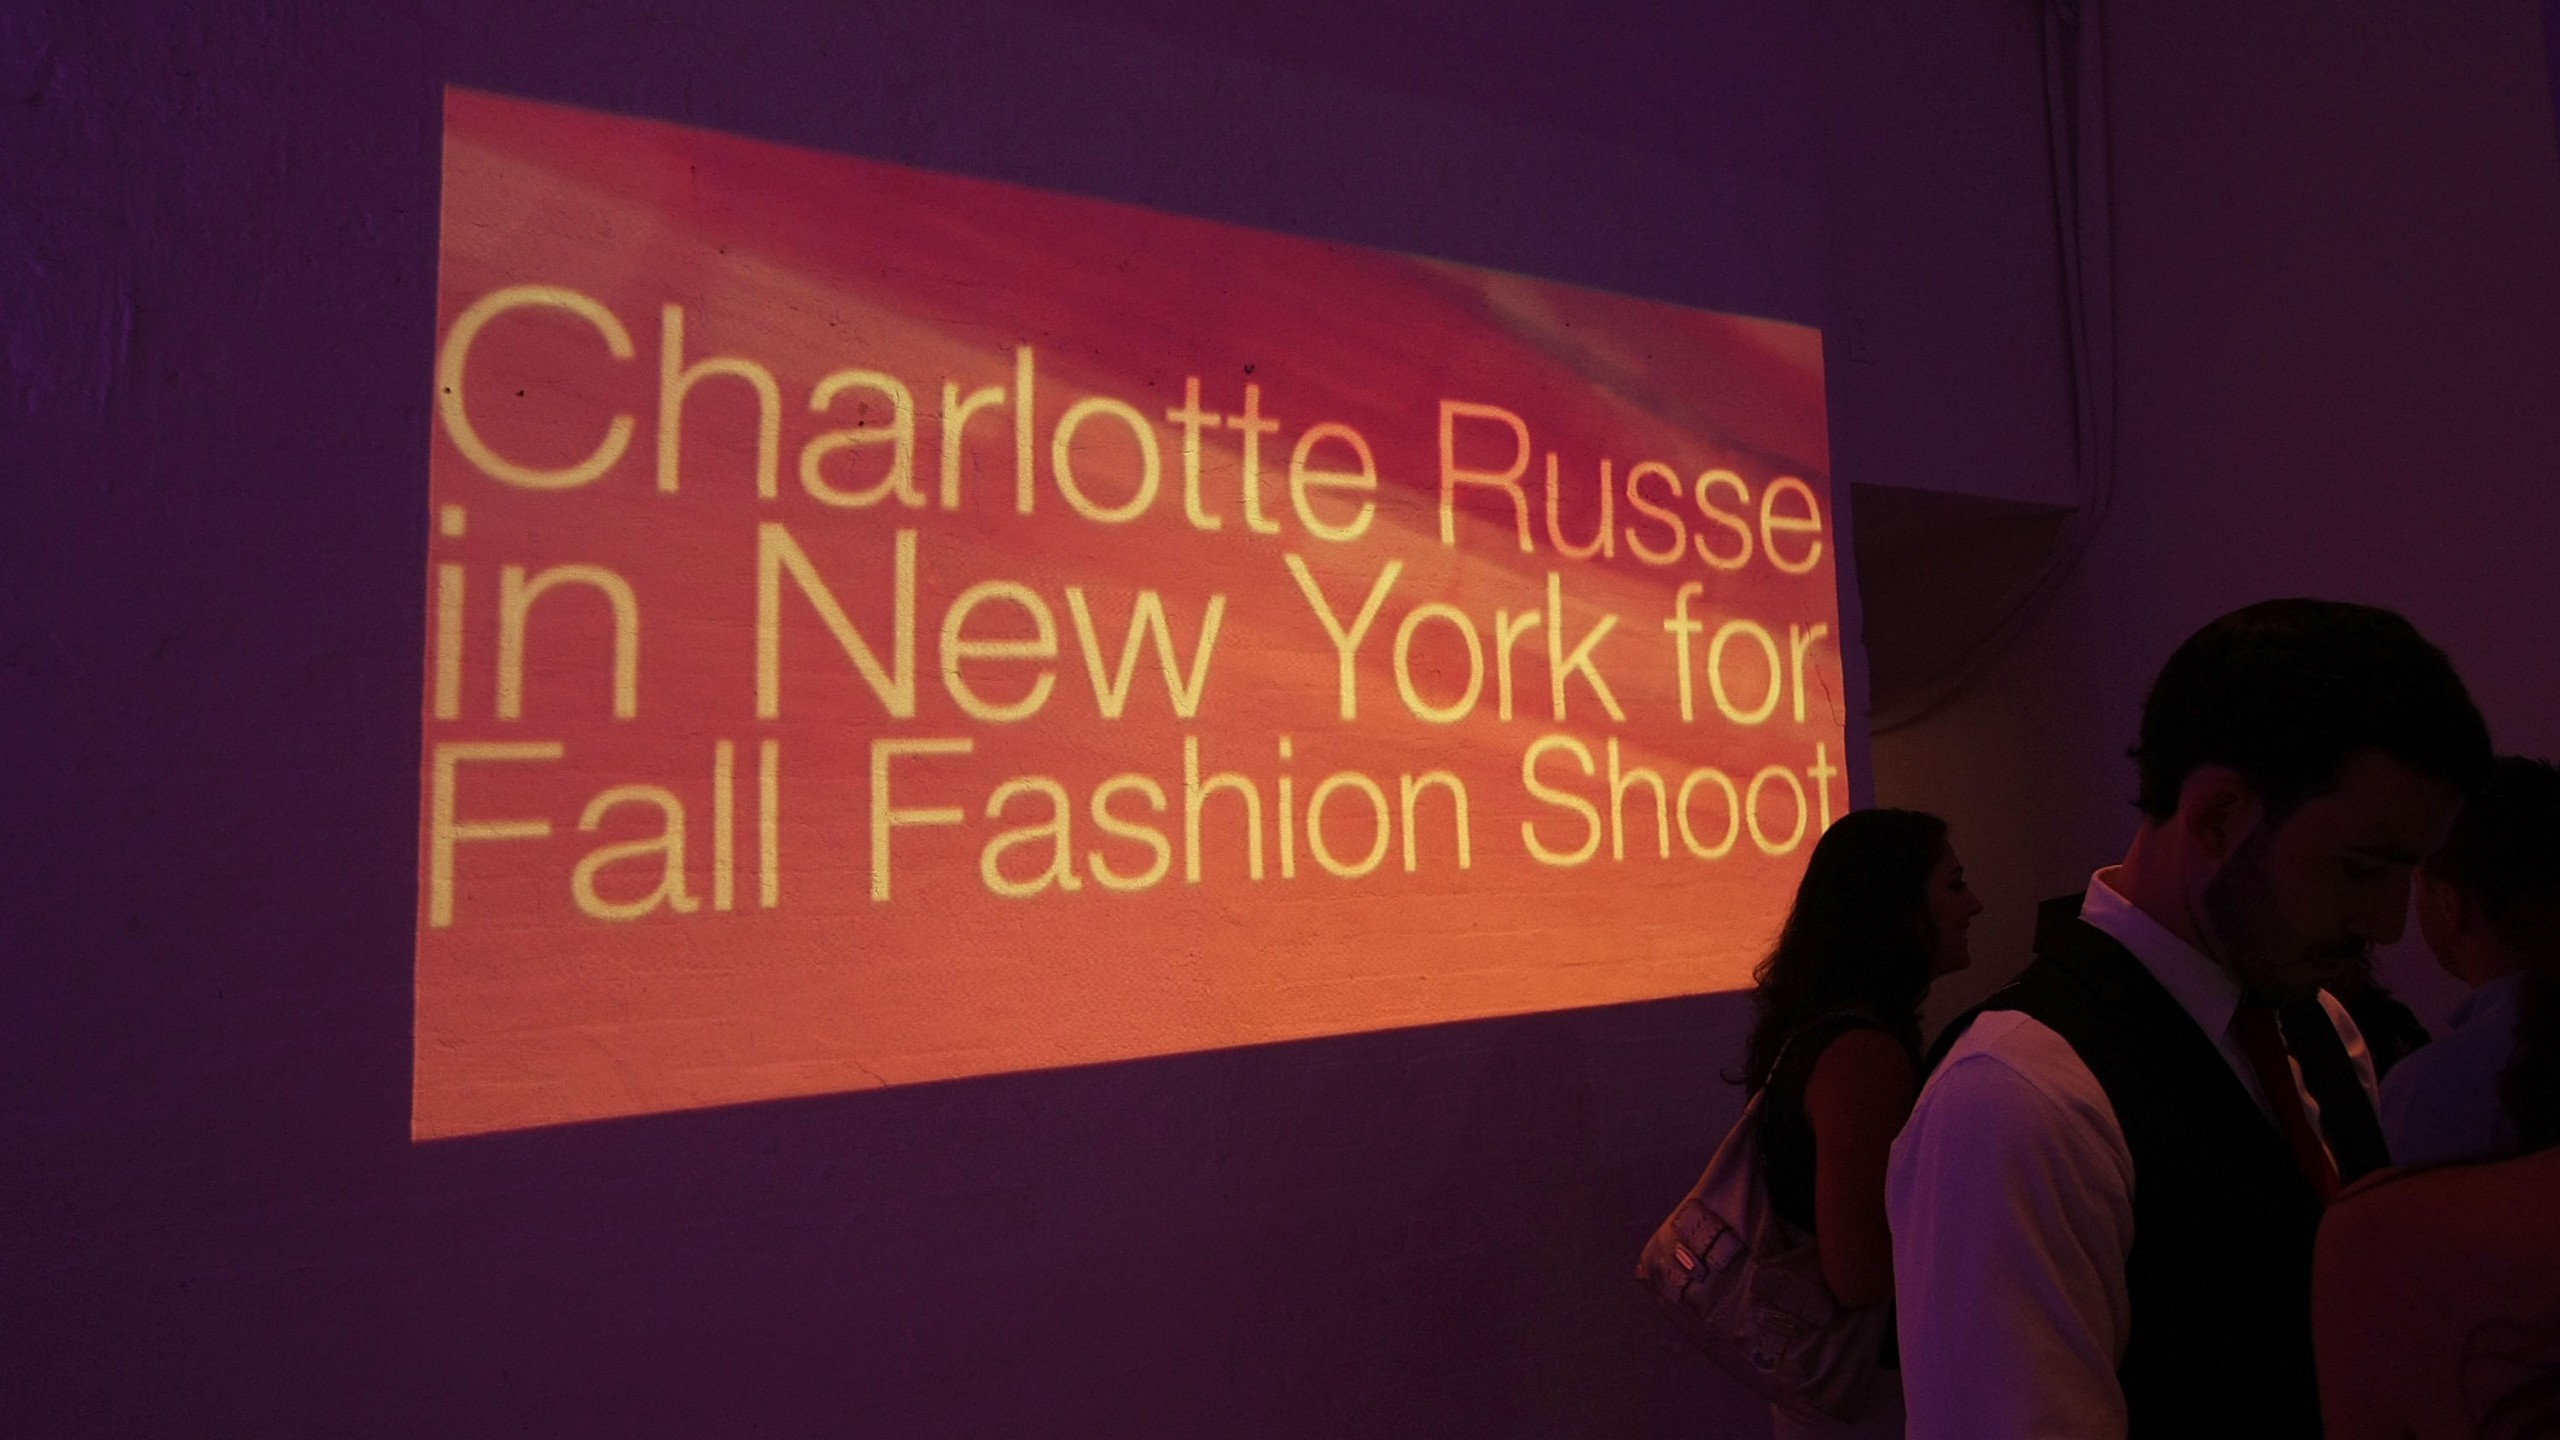 General view of atmosphere during the Charlotte Russe Fall 2009 launch event at Openhouse Gallery on July 15, 2009 in New York City. (Credit: Michael Loccisano/Getty Images for Charlotte Russe)